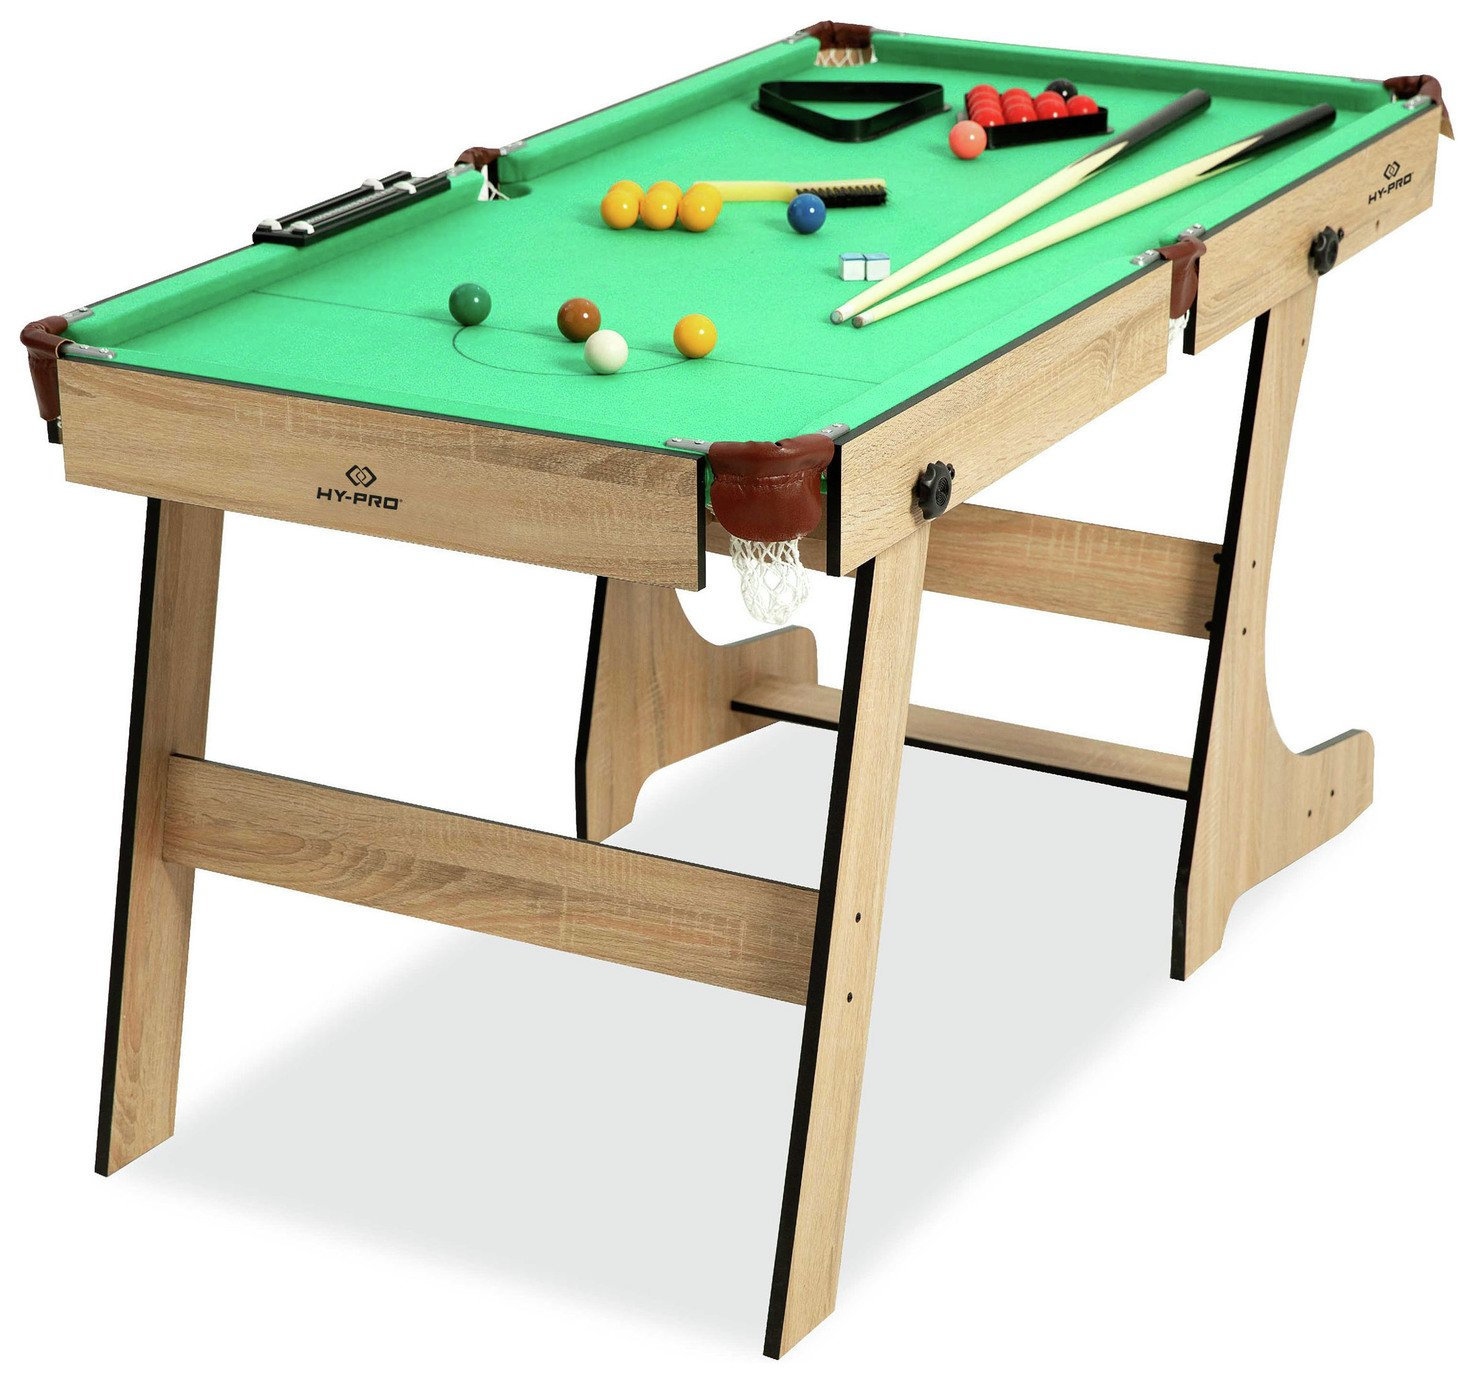 'Hy-pro 5ft Folding Snooker And Pool Table